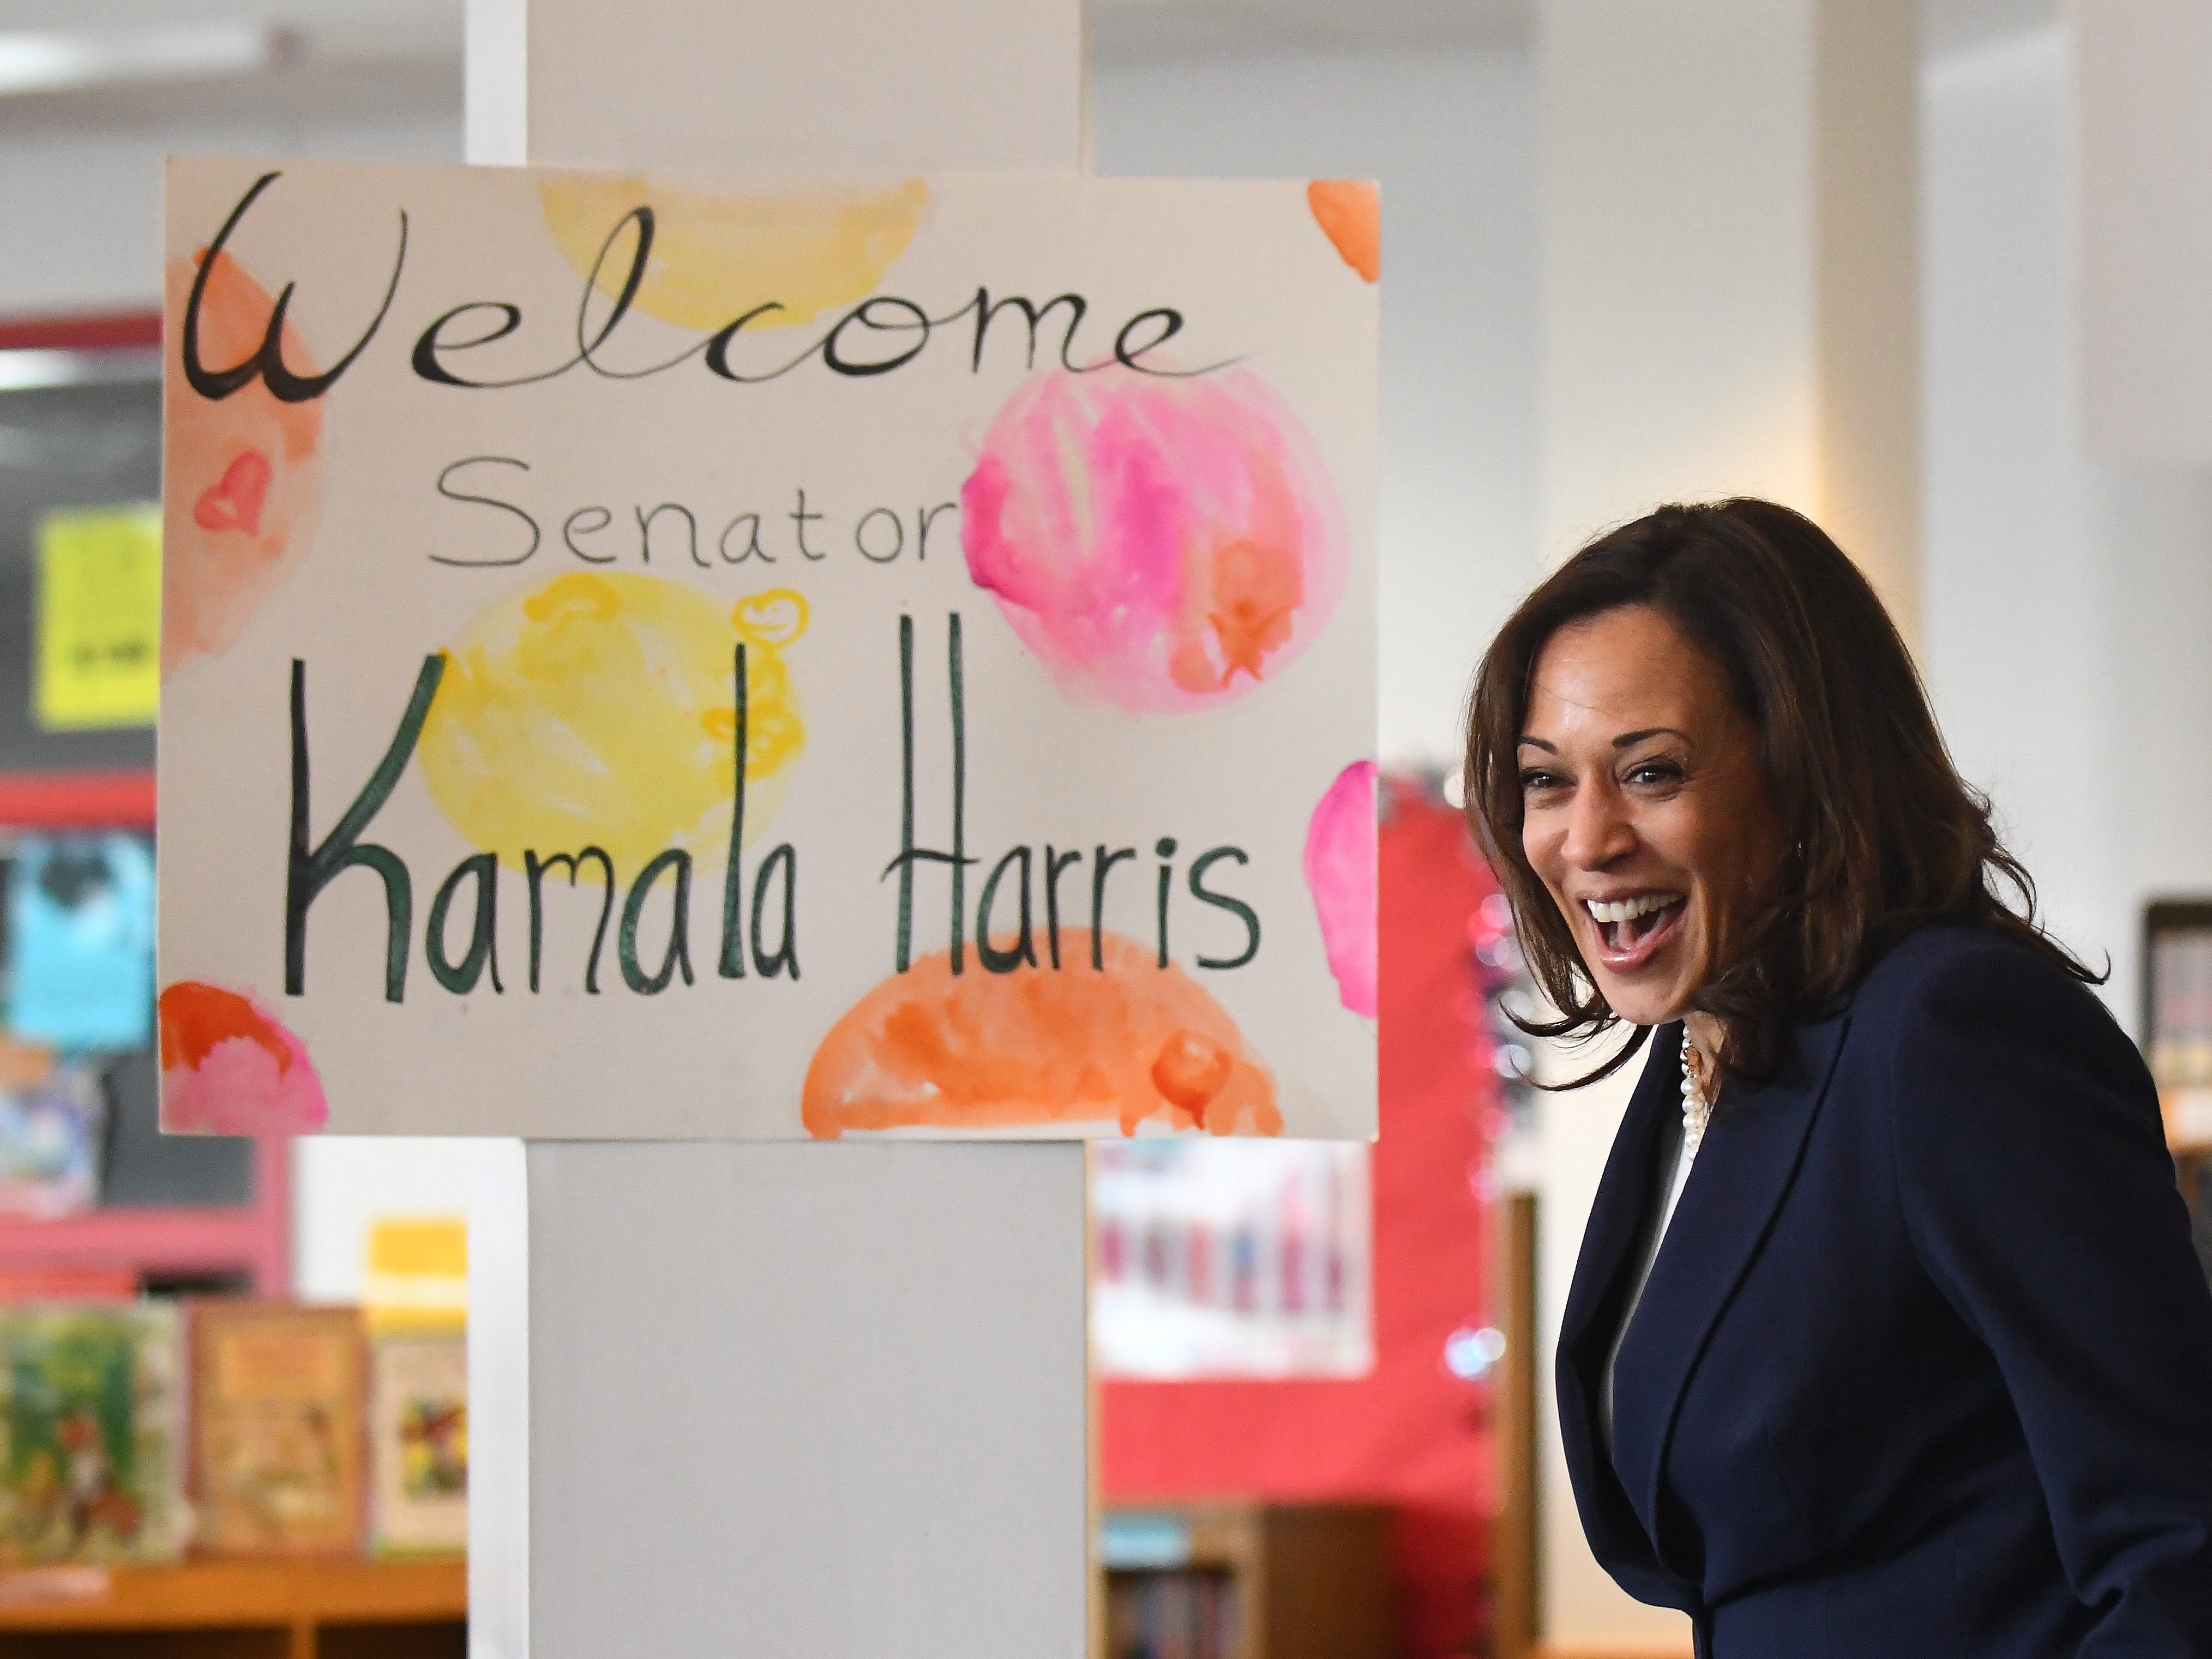 Democratic presidential candidate U.S. Senator Kamala Harris arrives to applause during a visit to Miller Elementary students, reading a story and answerint questions of the 4th graders in Dearborn, Michigan on May 6, 2019.